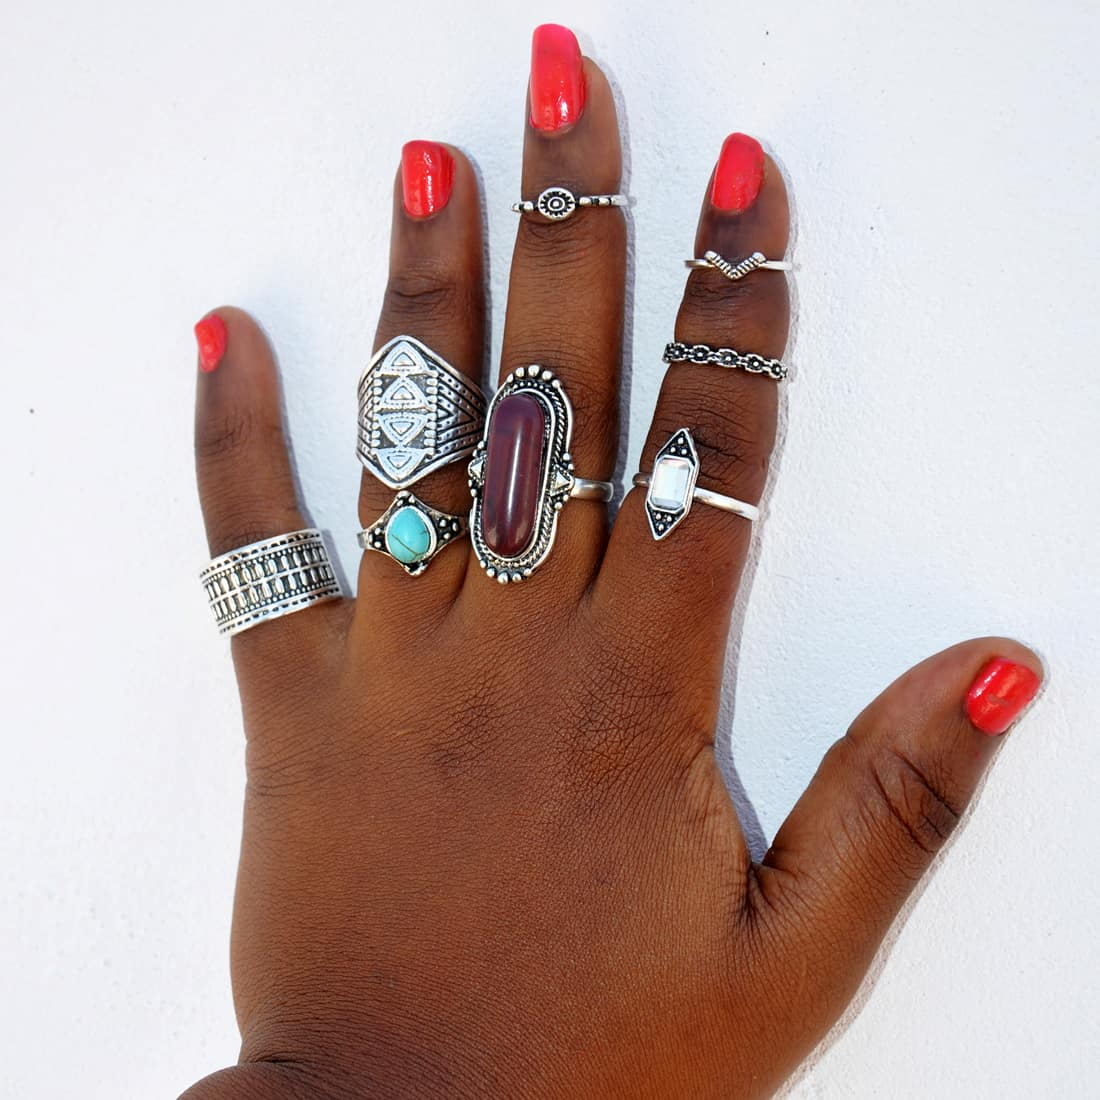 M0338 silver7 Jewelry Sets Rings maureens.com boutique